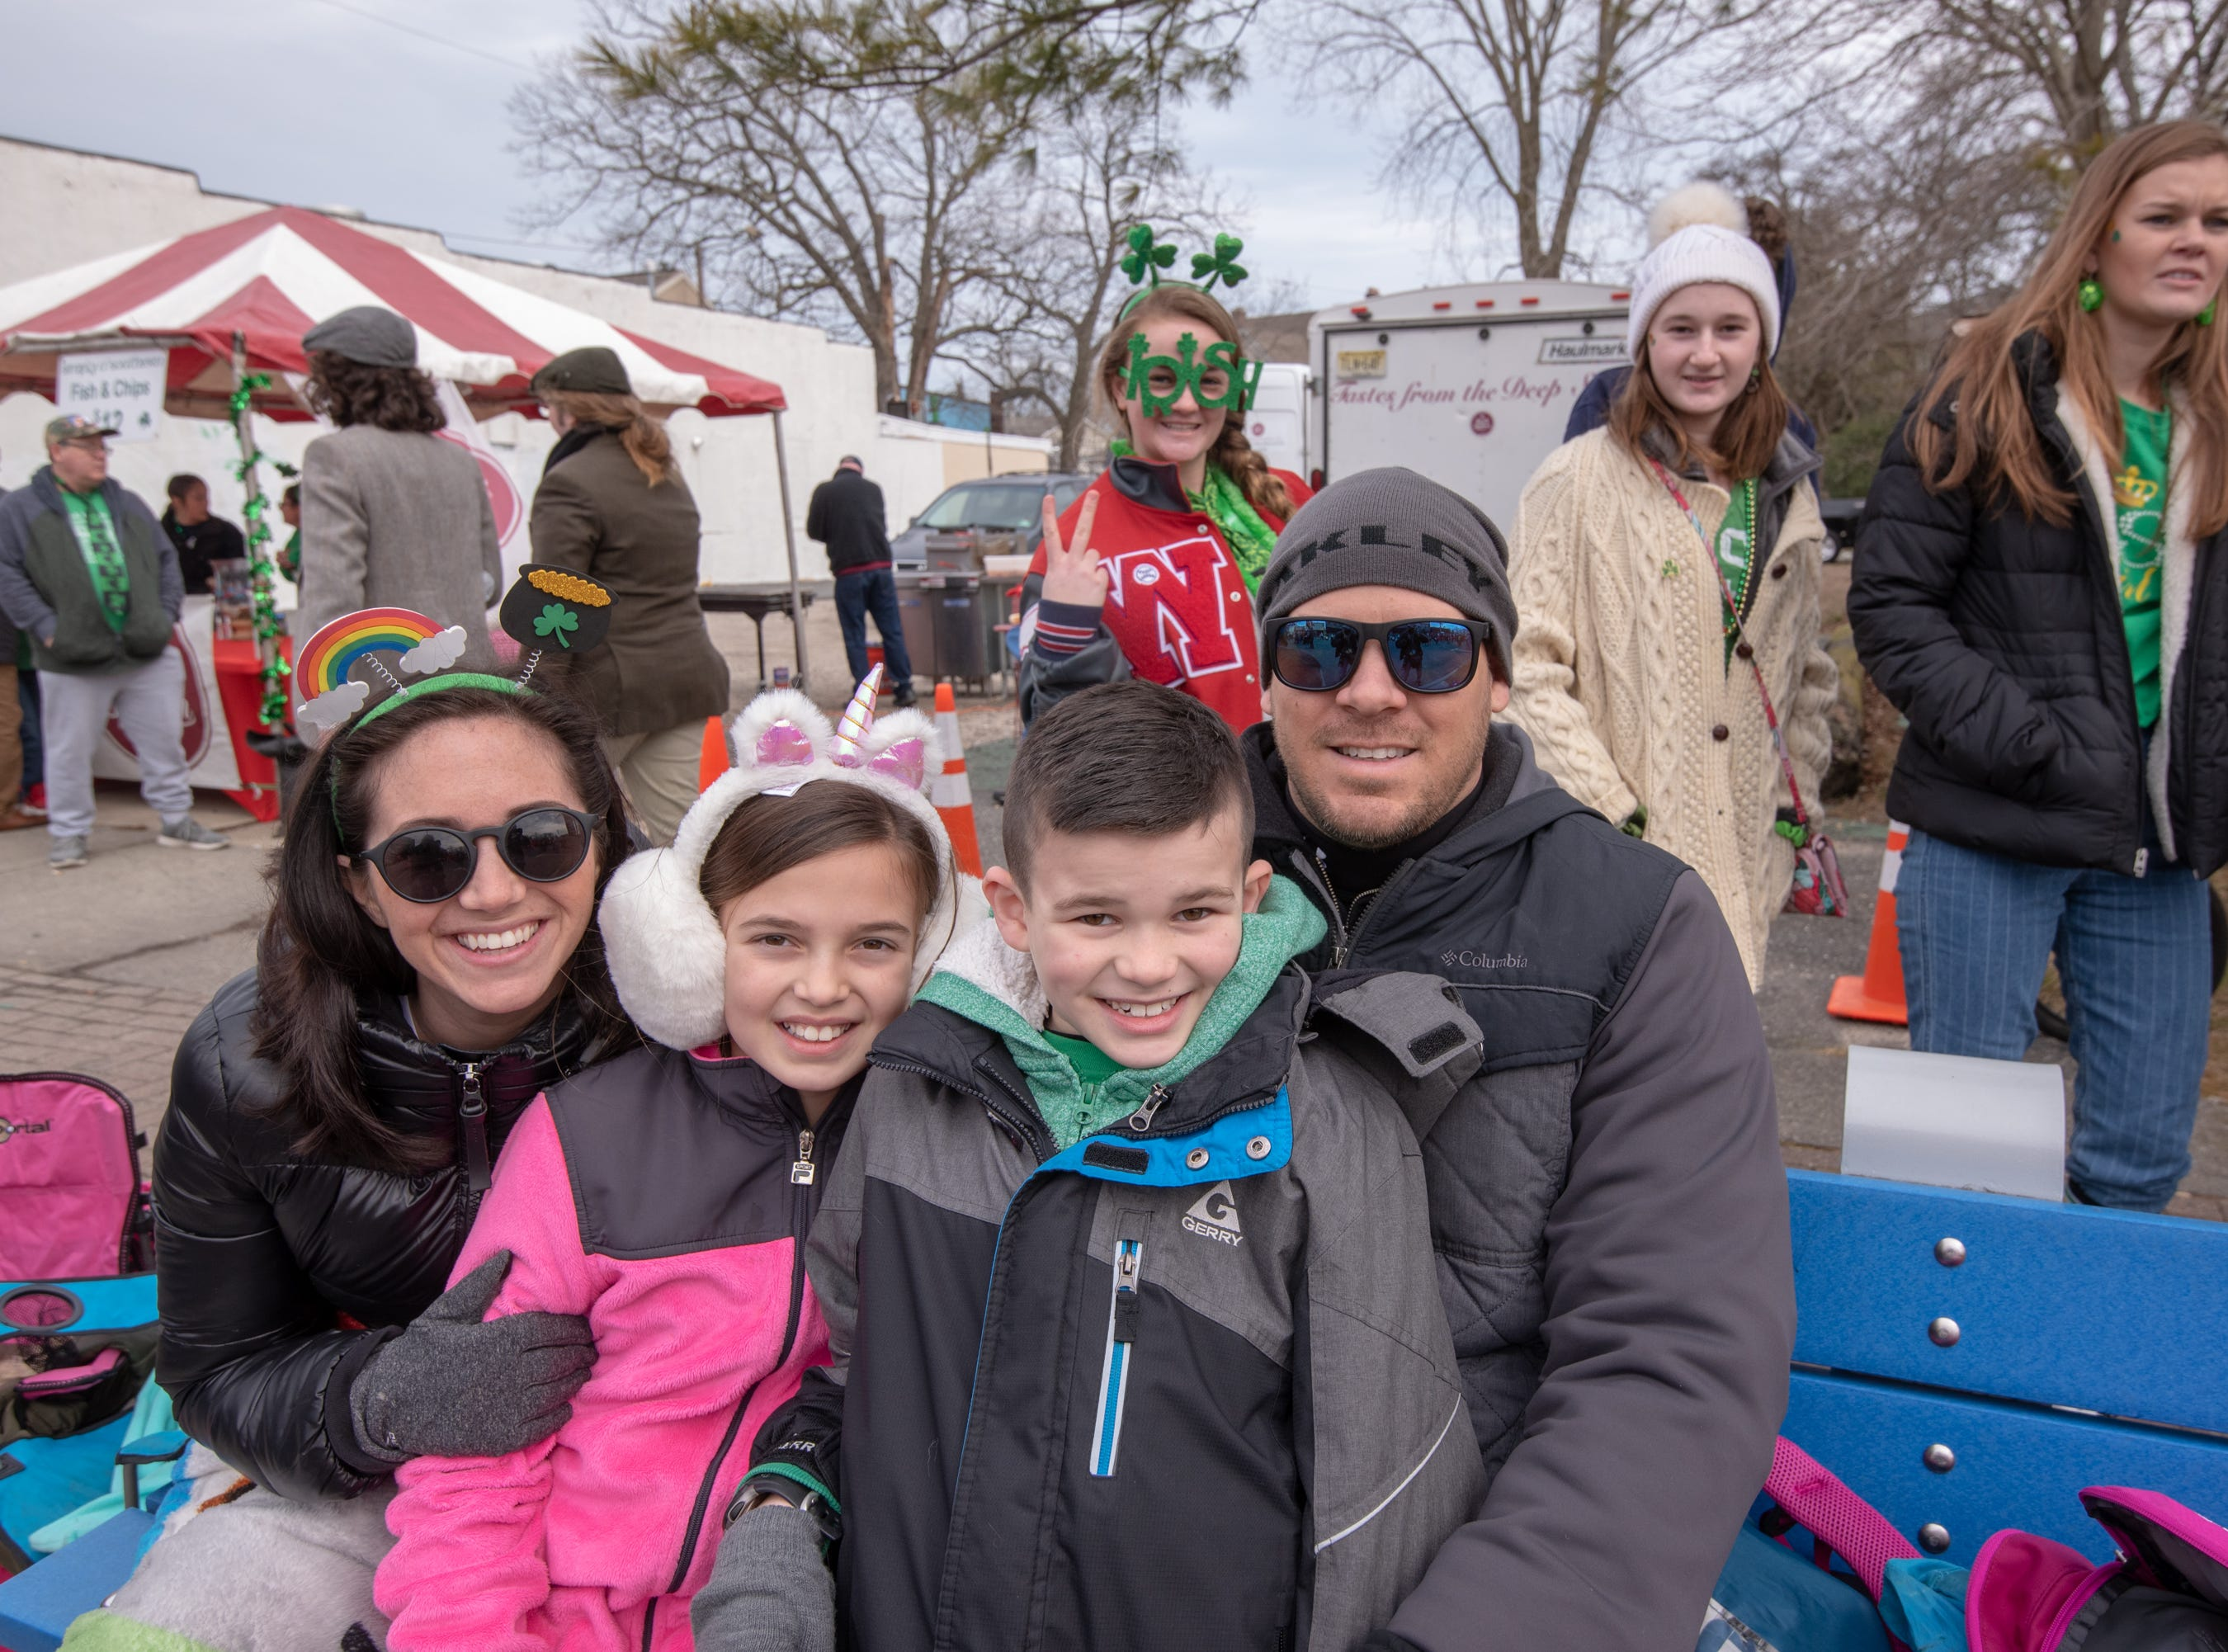 Craig and Dawn Warren and their children Brielle, 9, and Nico, 7, pose for a photo. The 46th annual Belmar/Lake Como St. Patrick's Day Parade was held in Belmar on March 3, 2019.